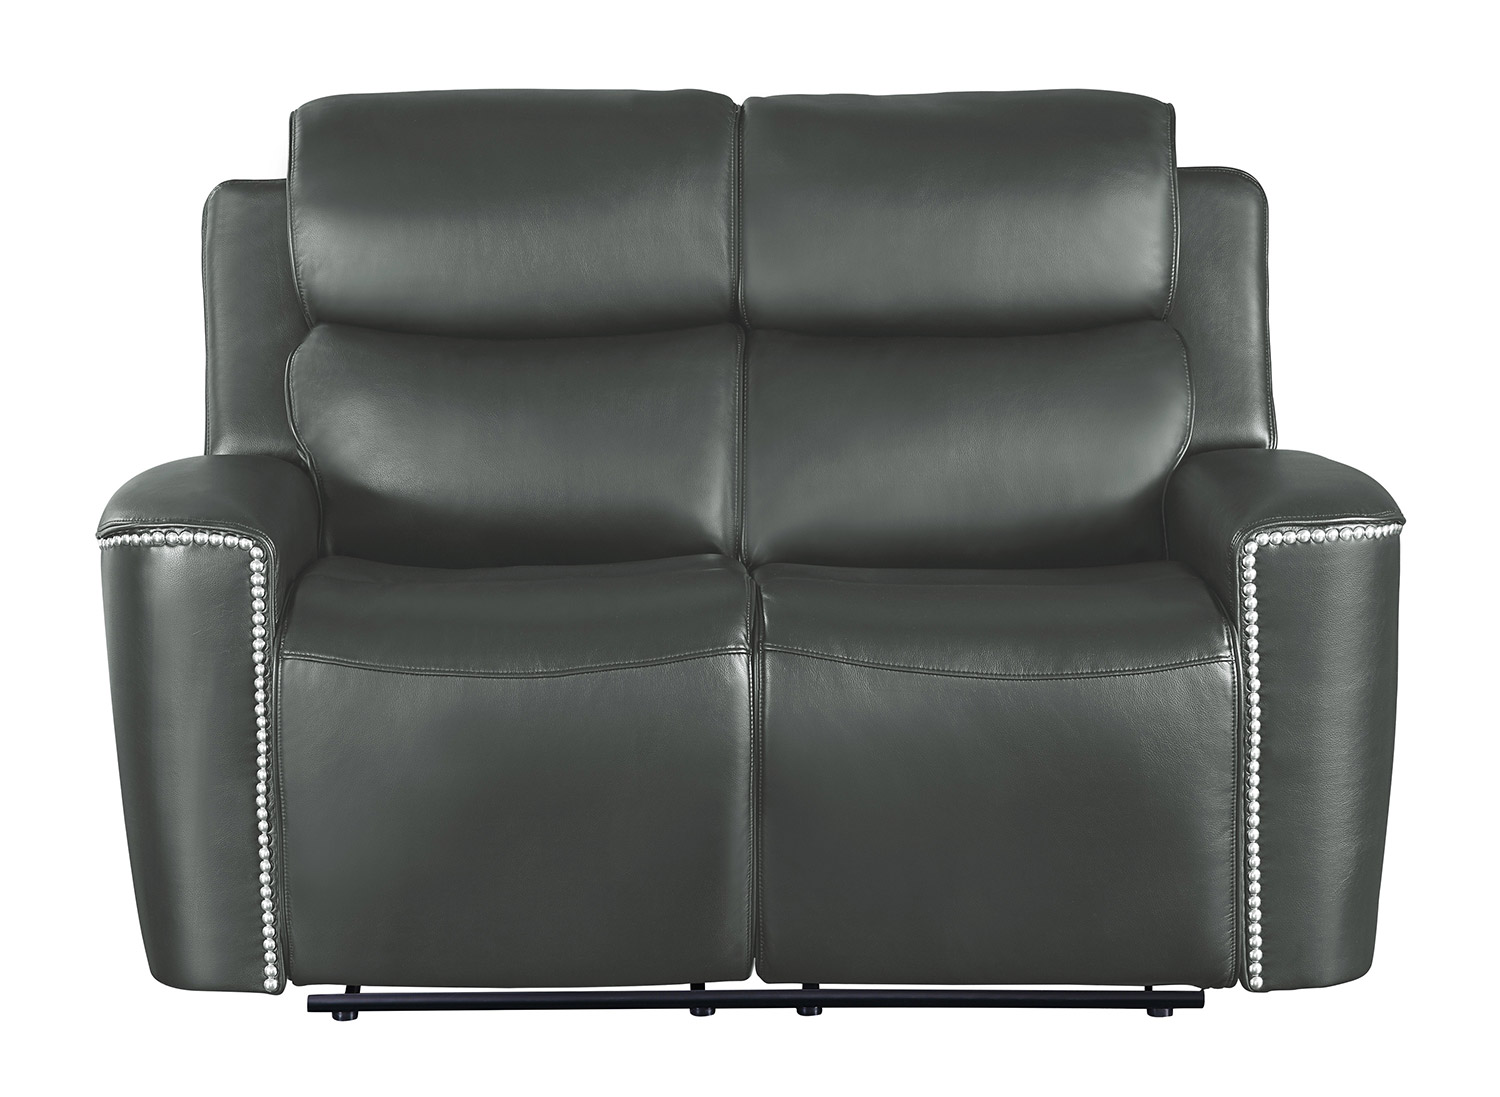 Homelegance Altair Double Reclining Love Seat Gray